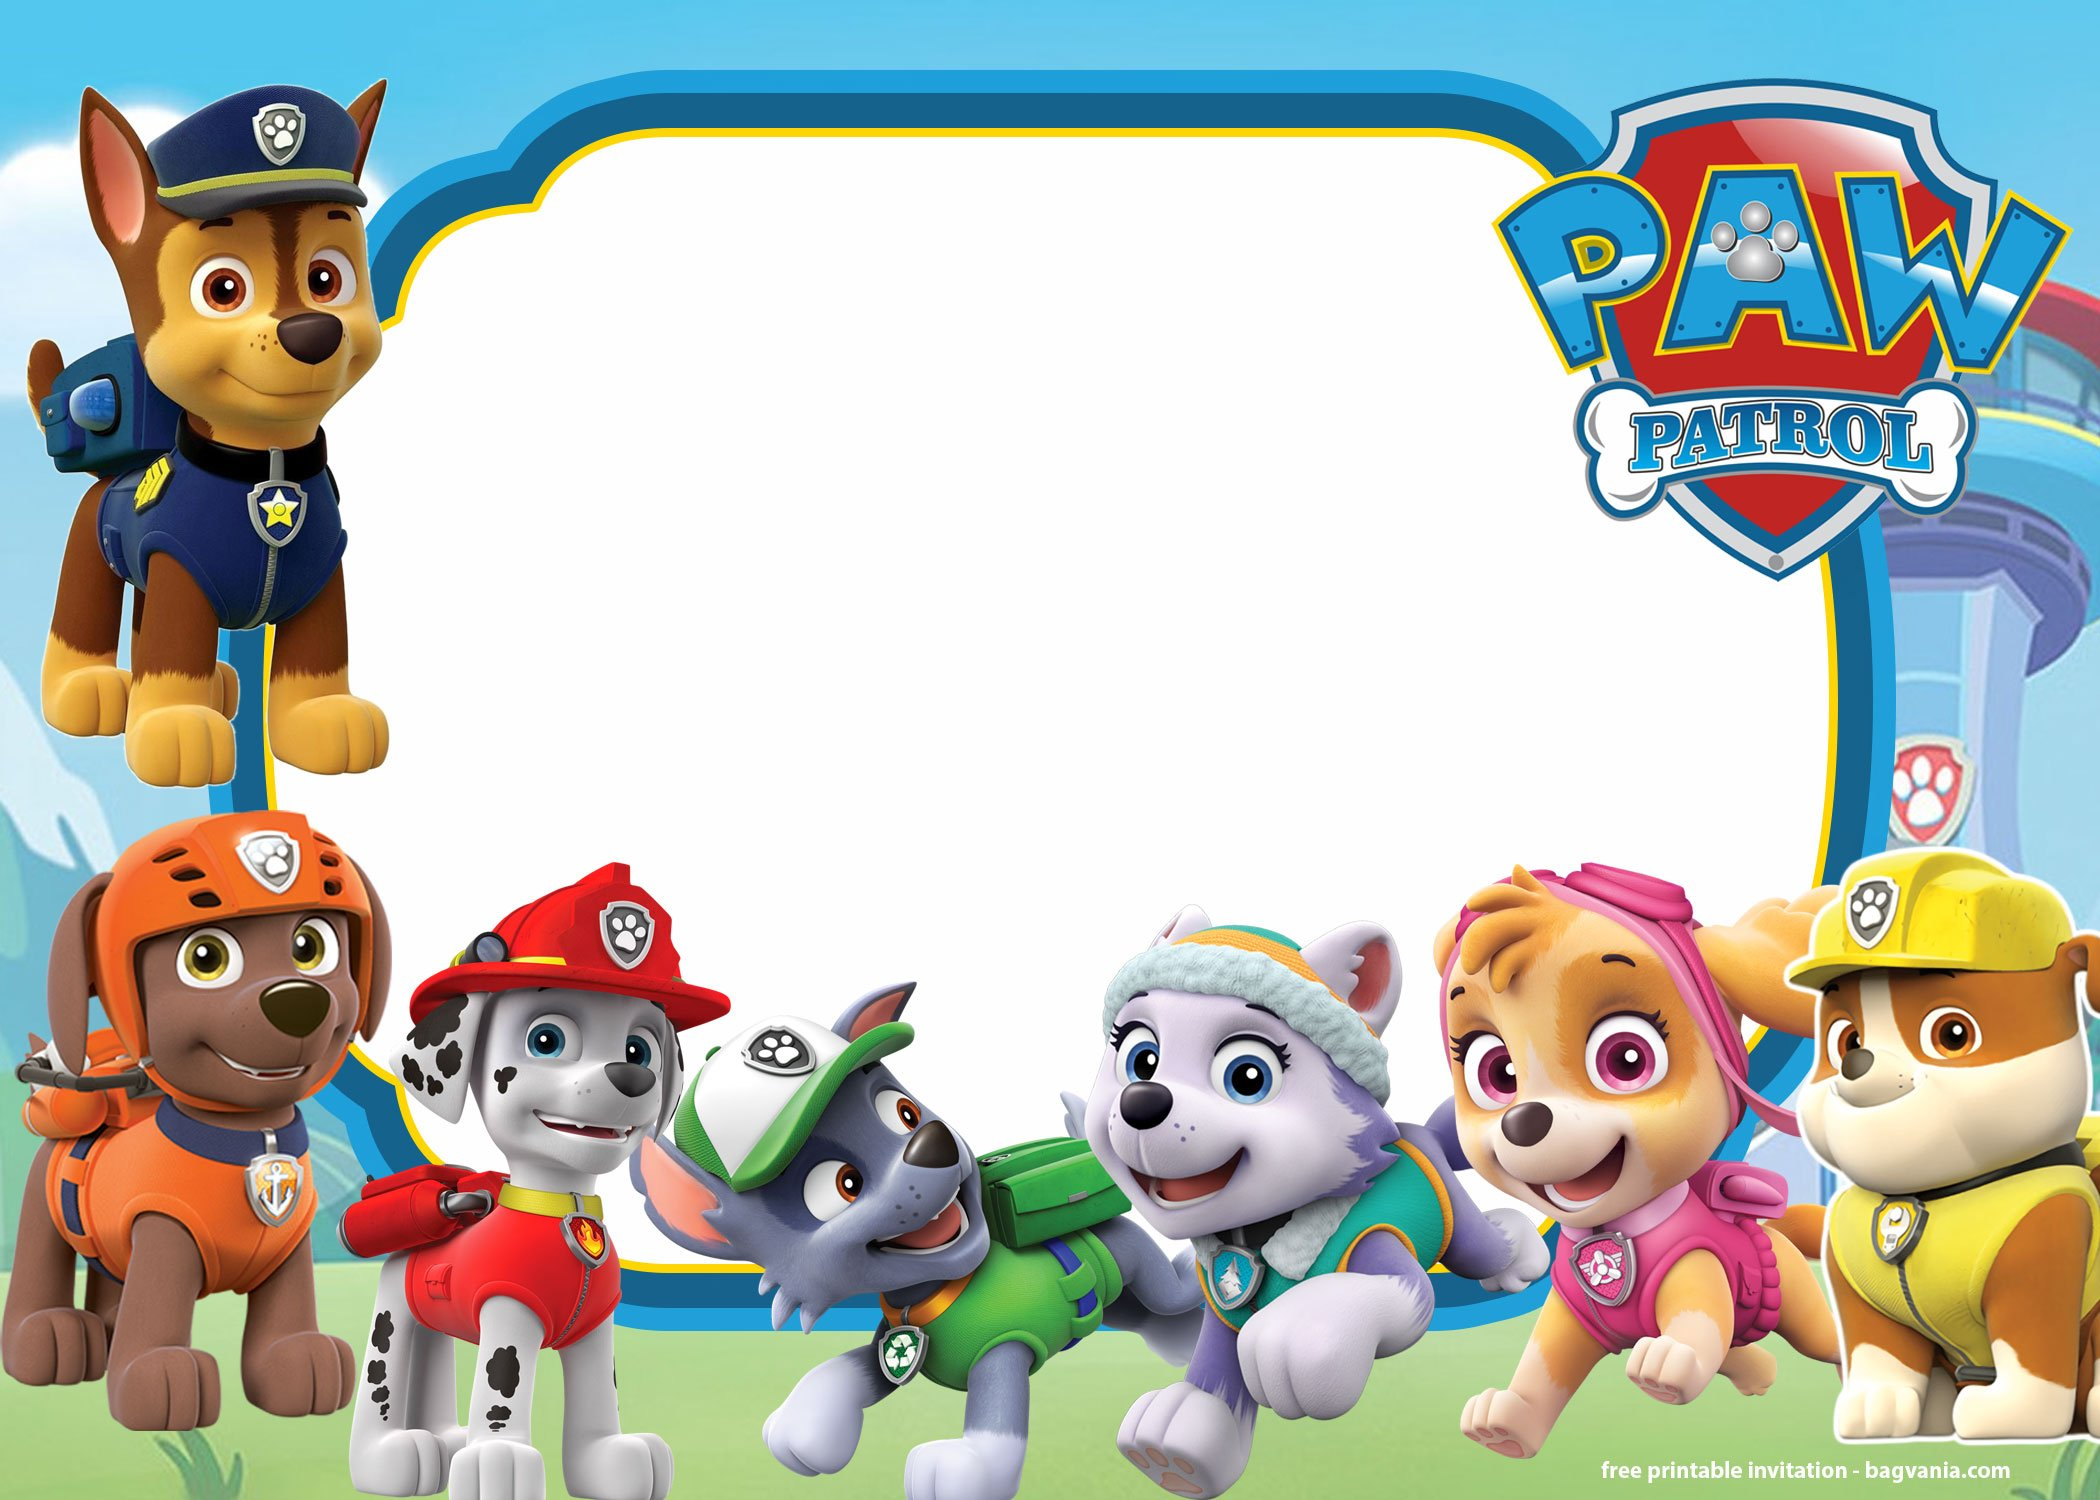 Free Printable Paw Patrol Invitation Templates Lookout Version Drevio